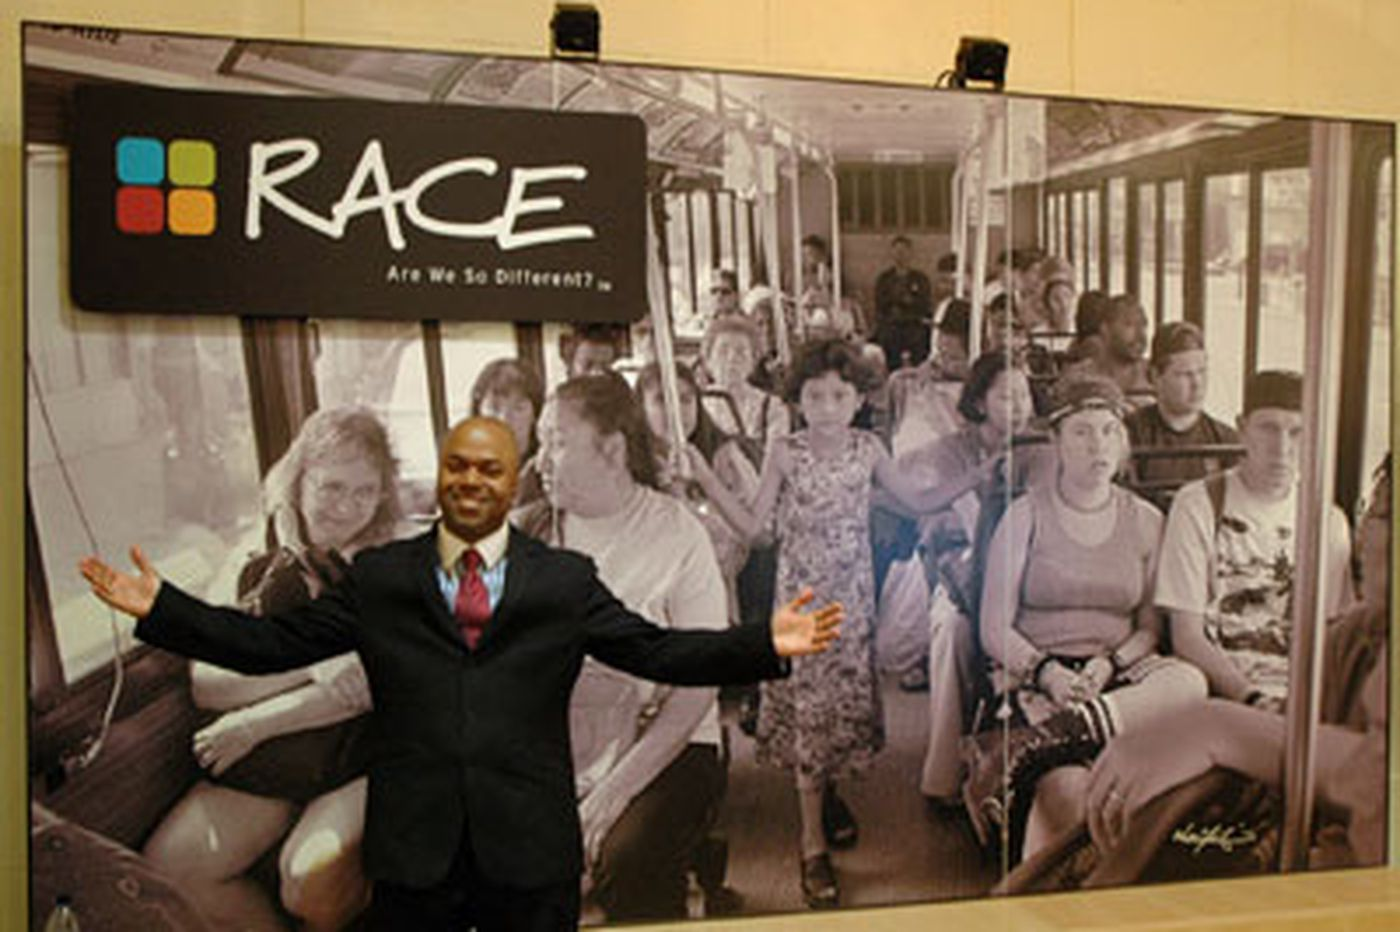 On the subject of race: Exhibit opens at the Franklin